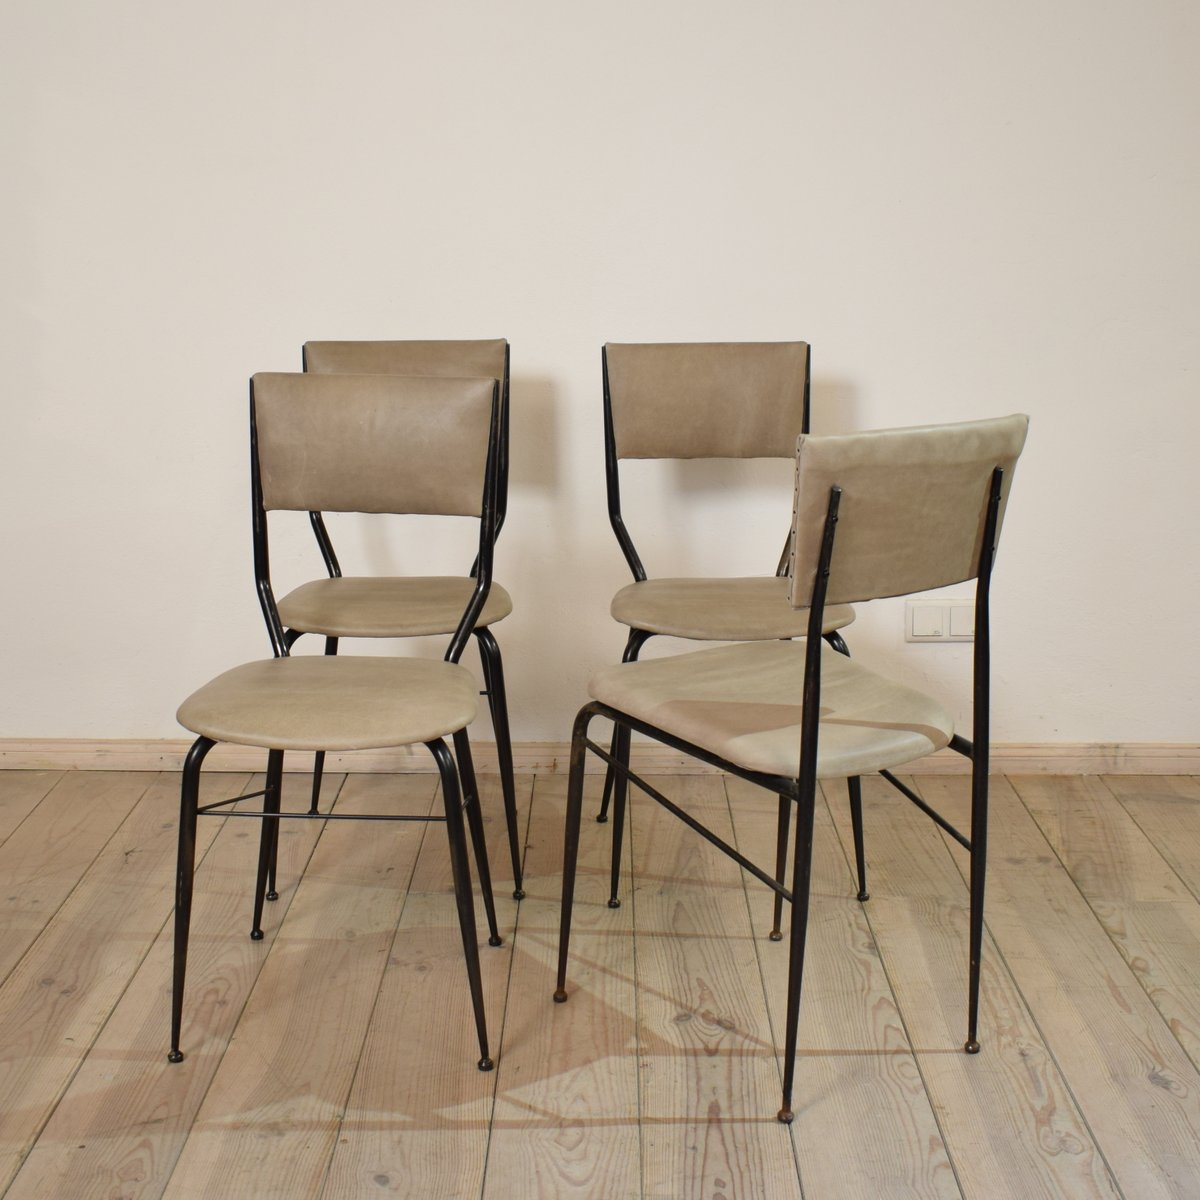 Italian Dining Chairs Mid Century Italian Dining Chairs Set Of 4 For Sale At Pamono